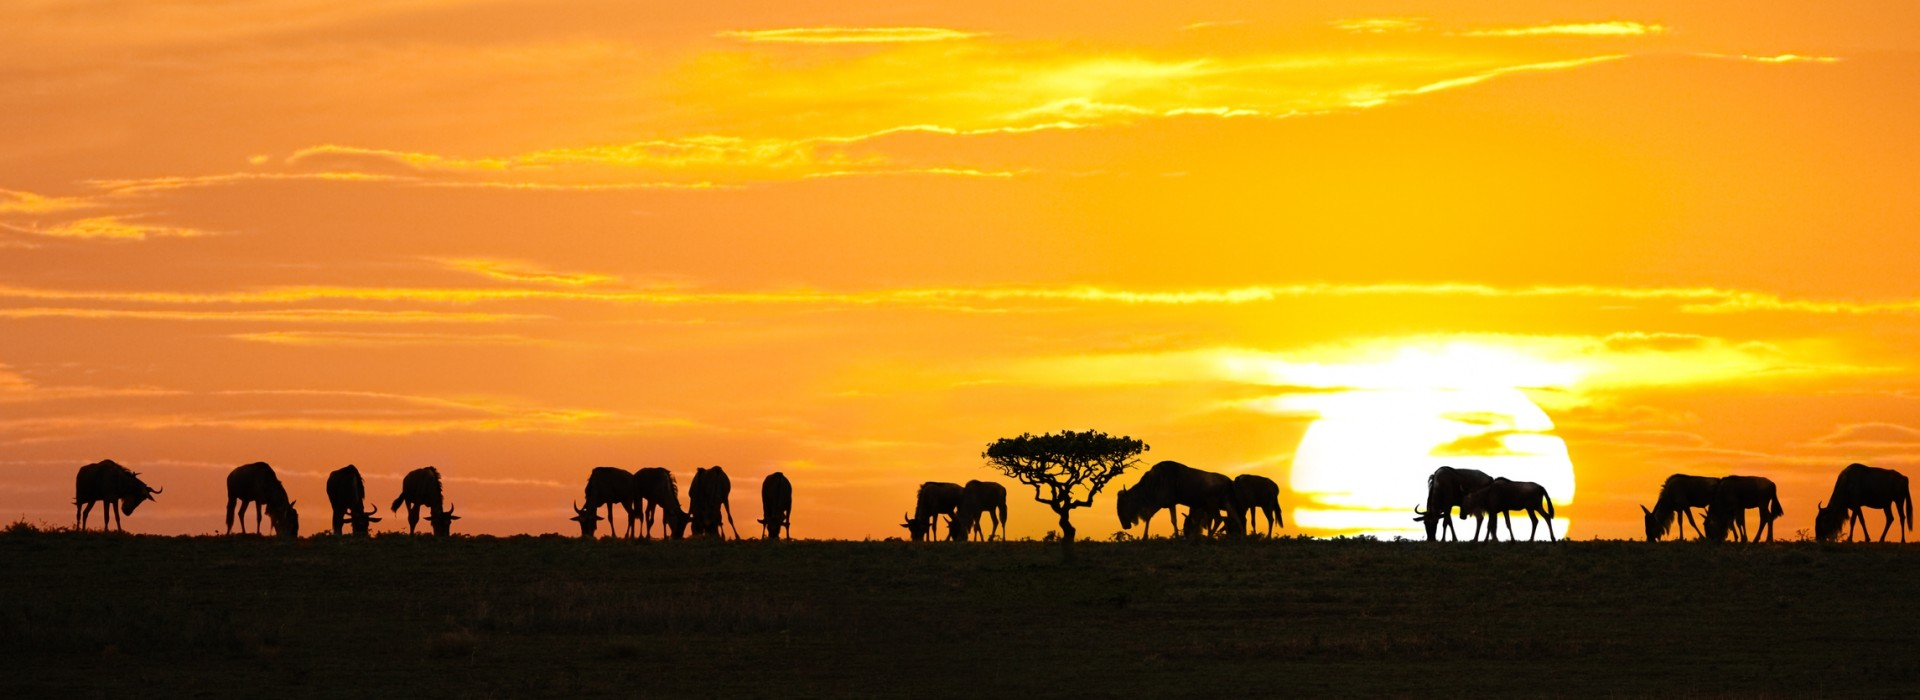 Travelling Tanzania - Tours and Trips in Tanzania